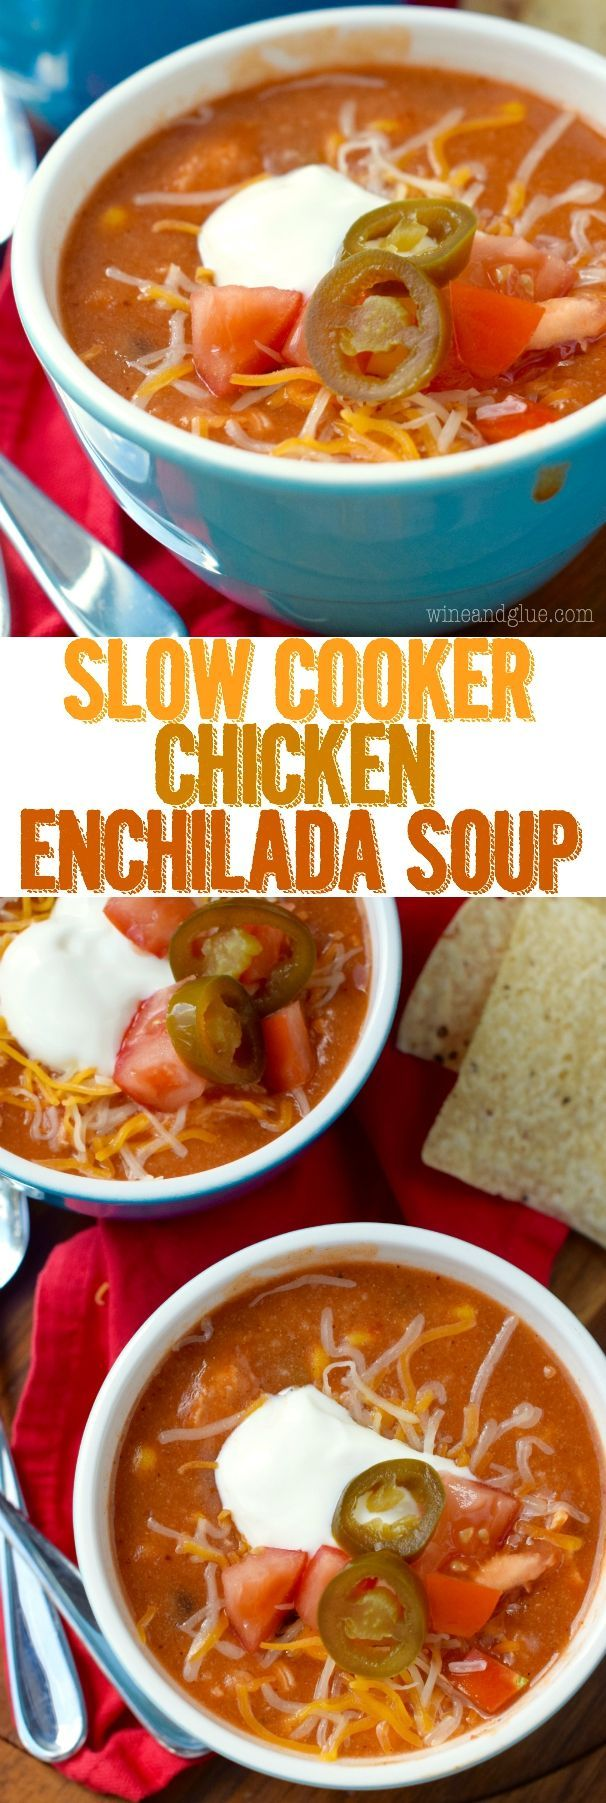 this slow cooker chicken enchilada soup is easy to throw together